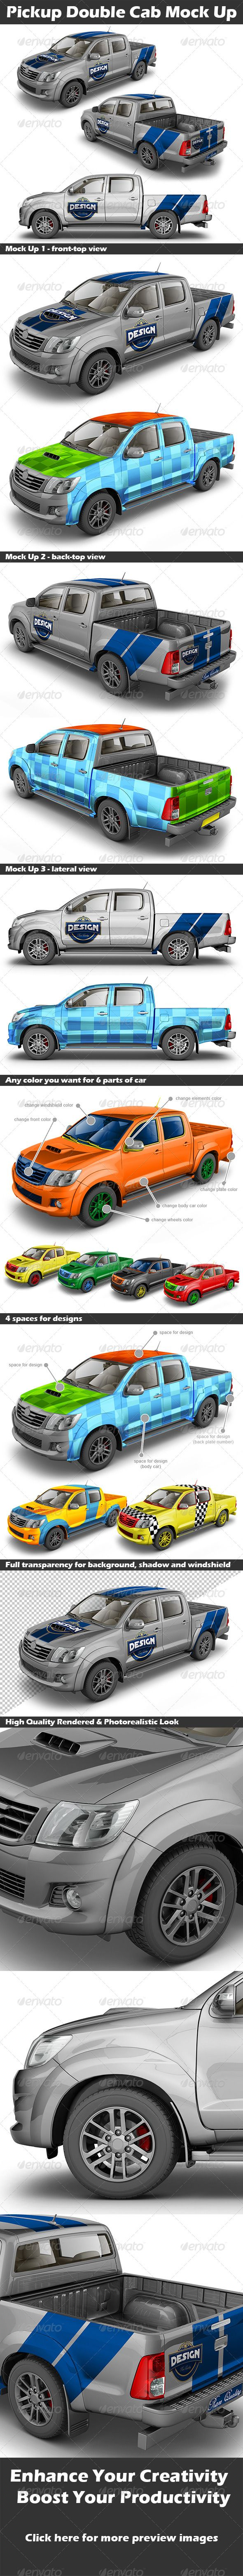 Pickup Double Cab Mock Up | Fahrzeugbeschriftung